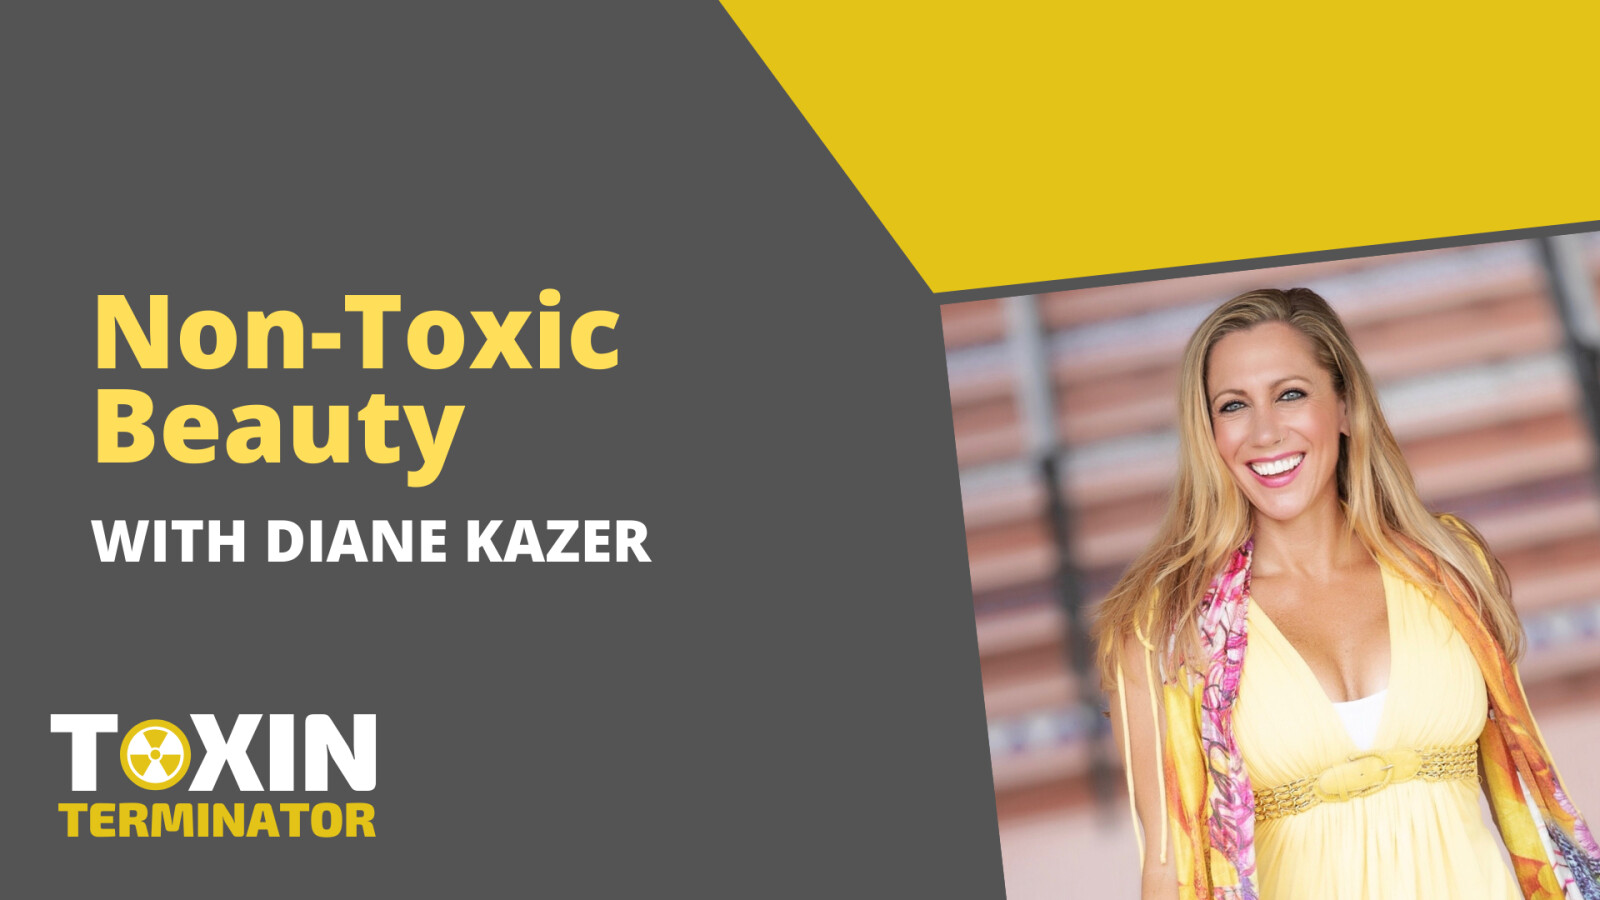 Non-Toxic Beauty with Diane Kazer